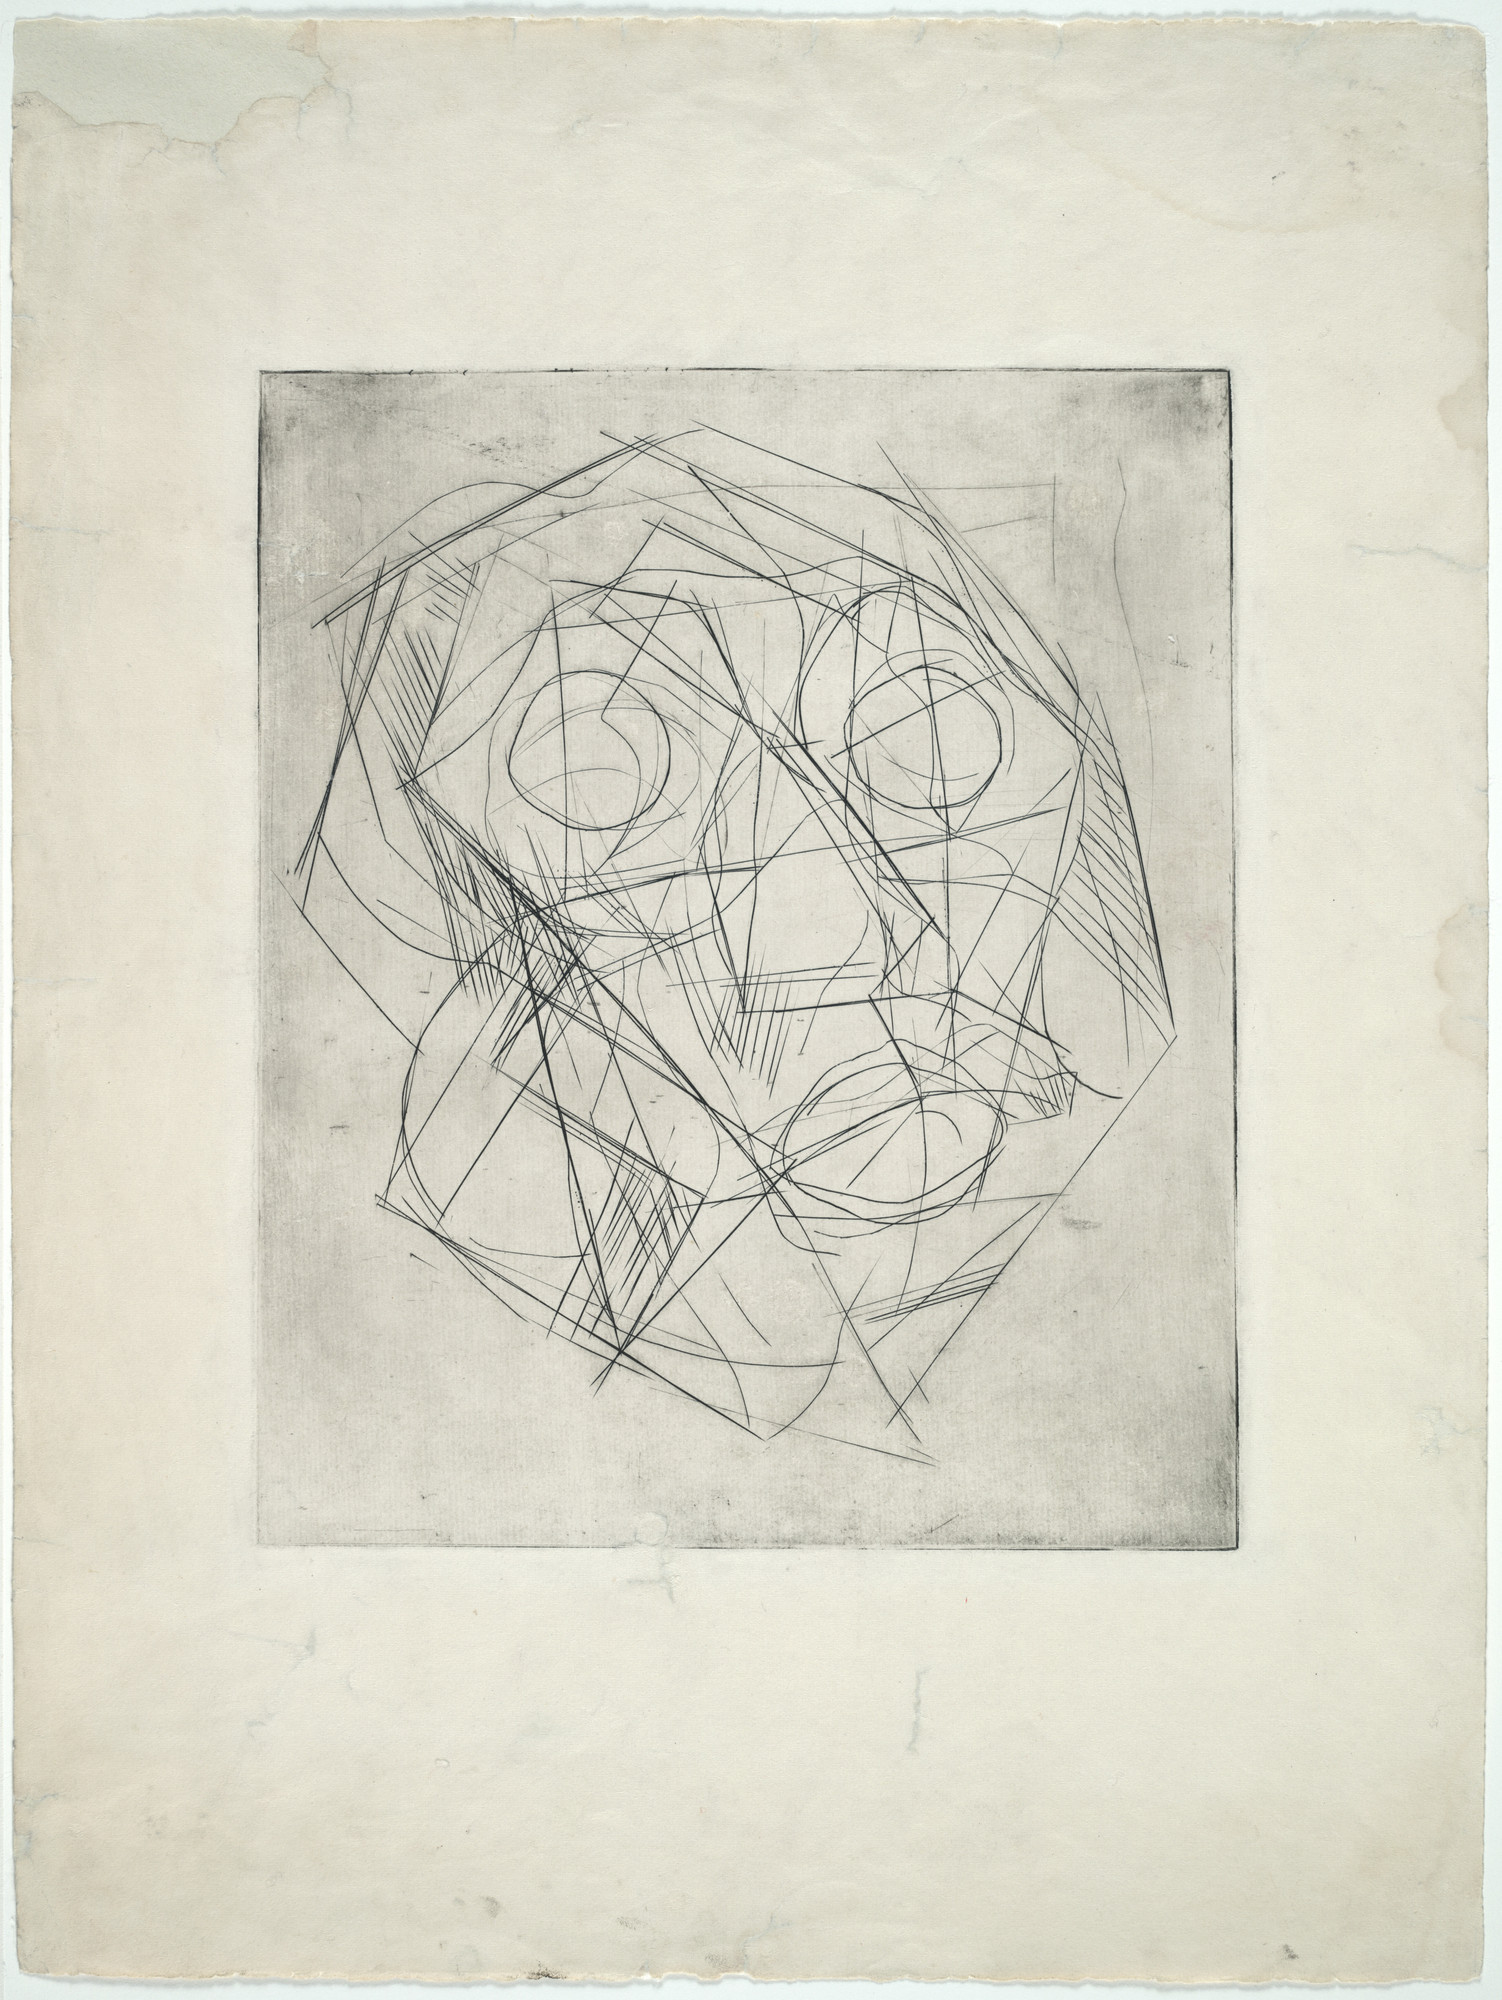 Alberto Giacometti. Cubist Head. 1933. Engraving, plate: 12 1⁄16 × 10ʺ (30.6 × 25.4 cm); sheet: 20 × 14 15/16ʺ (50.8 × 38 cm). Publisher: unpublished. Printer: the artist at Atelier 17, Paris. Edition: unique. Gift of Mr. Stanley W. Hayter. © 2016 Artists Rights Society (ARS), New York / ADAGP, Paris